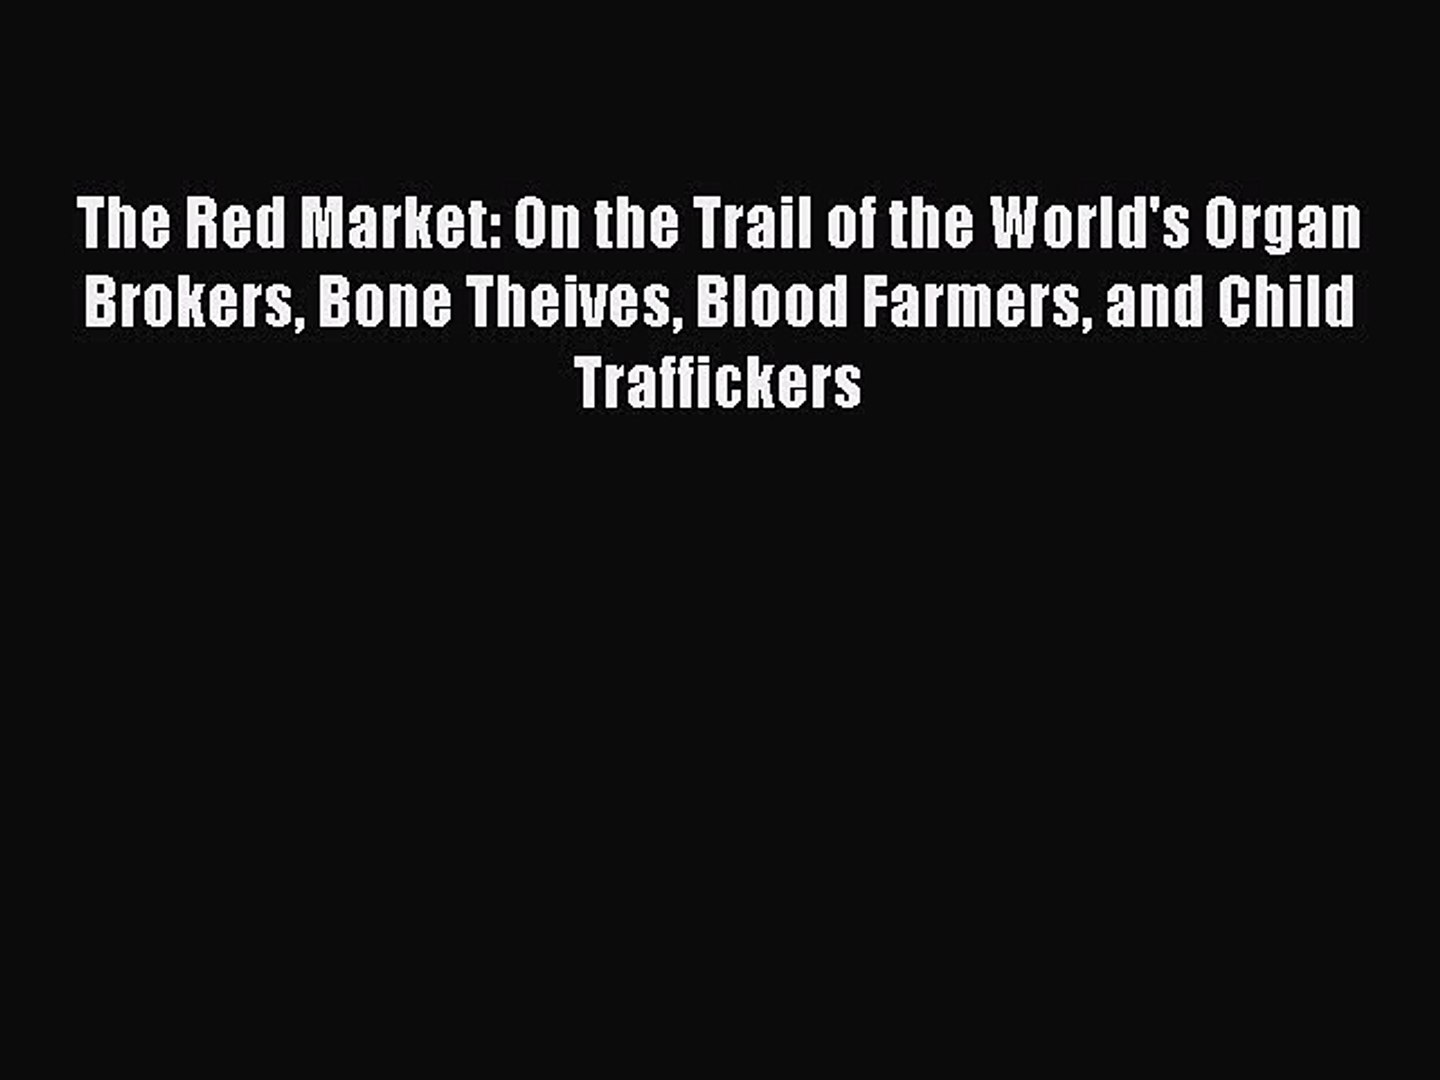 [Read book] The Red Market: On the Trail of the World's Organ Brokers Bone Theives Blood Farmer